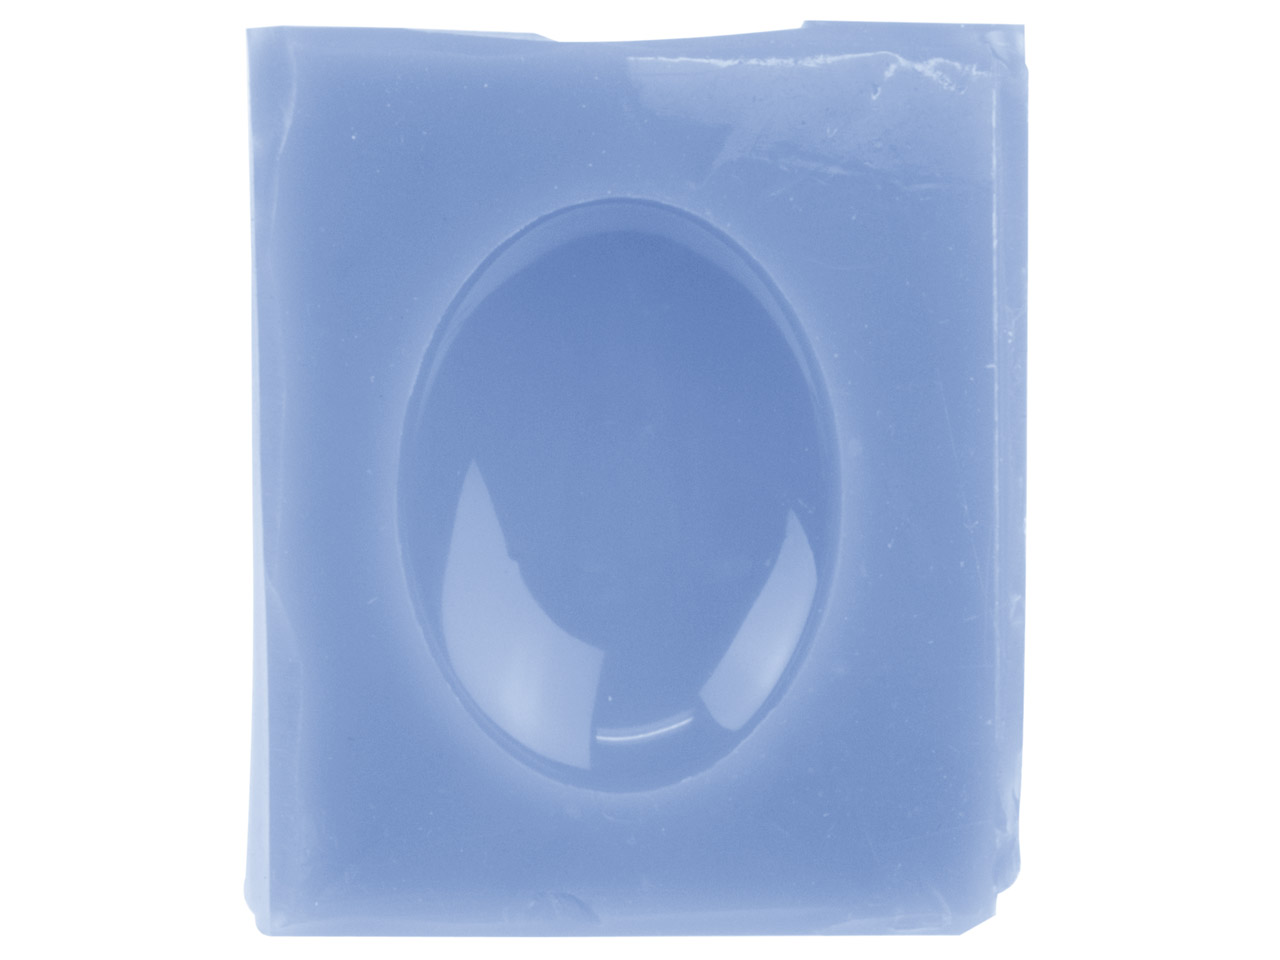 Silicone Cabochon Mould For Resin  Casting, 3x4cm